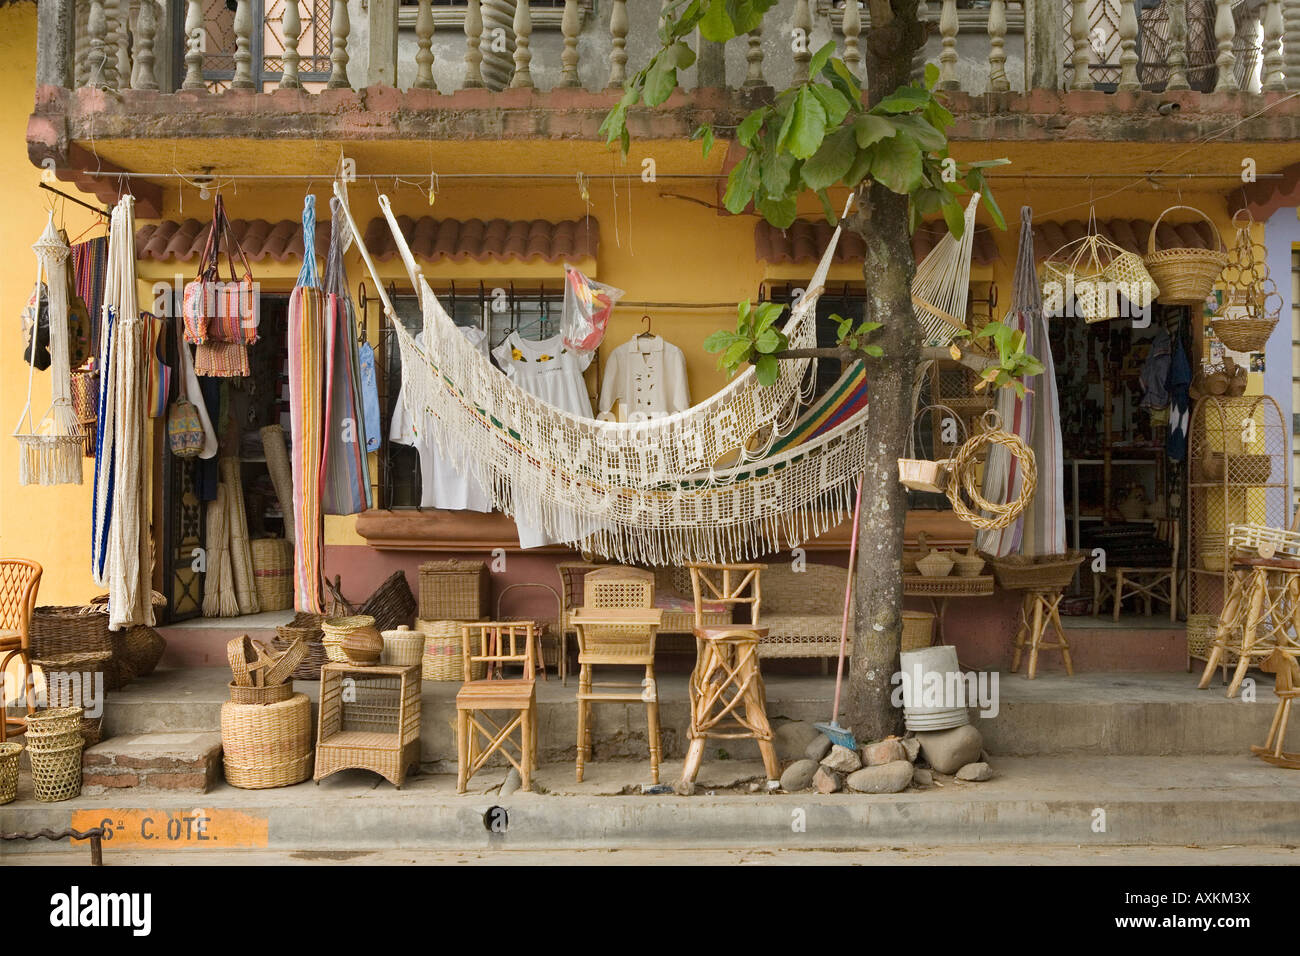 Muebles Nahuizalco Salvador - Store Selling Furniture Hammocks And Crafts In Nahuizalco El [mjhdah]http://c8.alamy.com/comp/AXMW9K/store-selling-furniture-hammocks-and-crafts-in-nahuizalco-el-salvador-AXMW9K.jpg